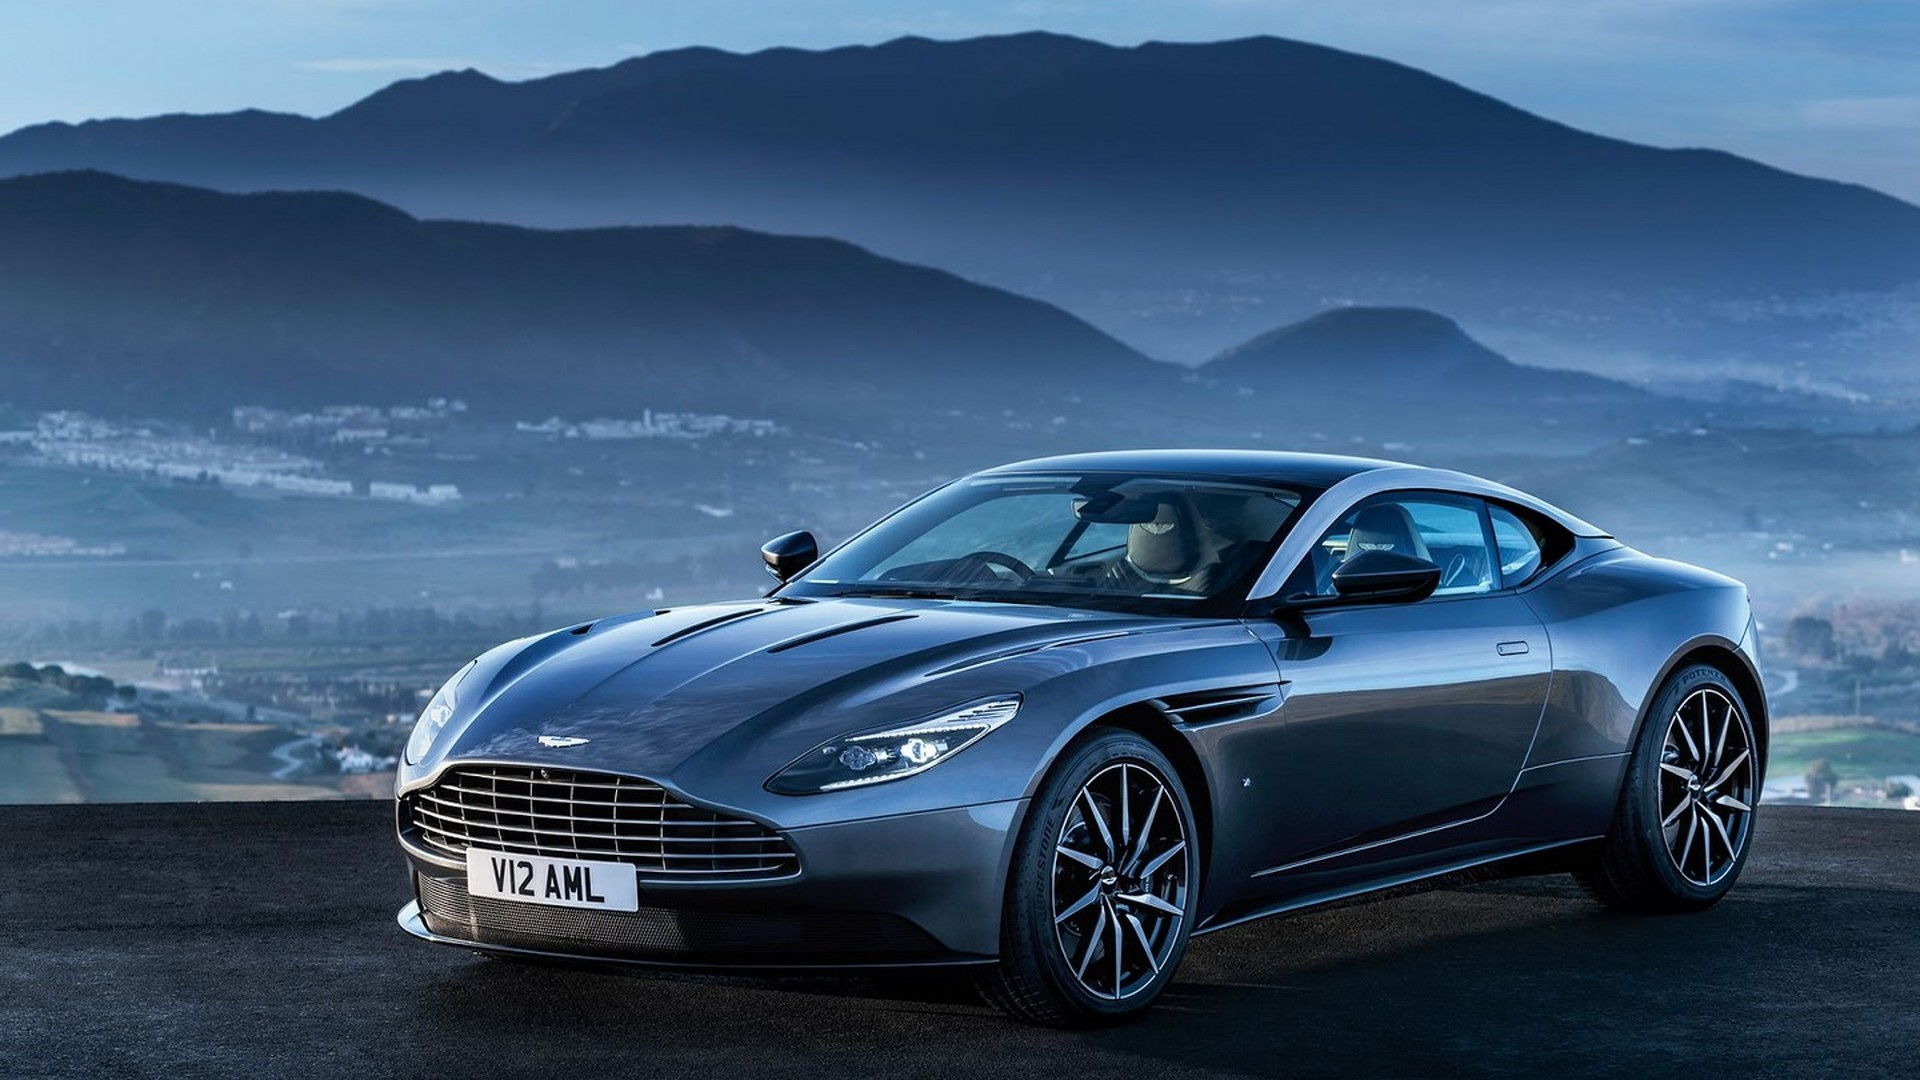 Aston Martin DB11 Images Have Leaked Ahead Of Debut